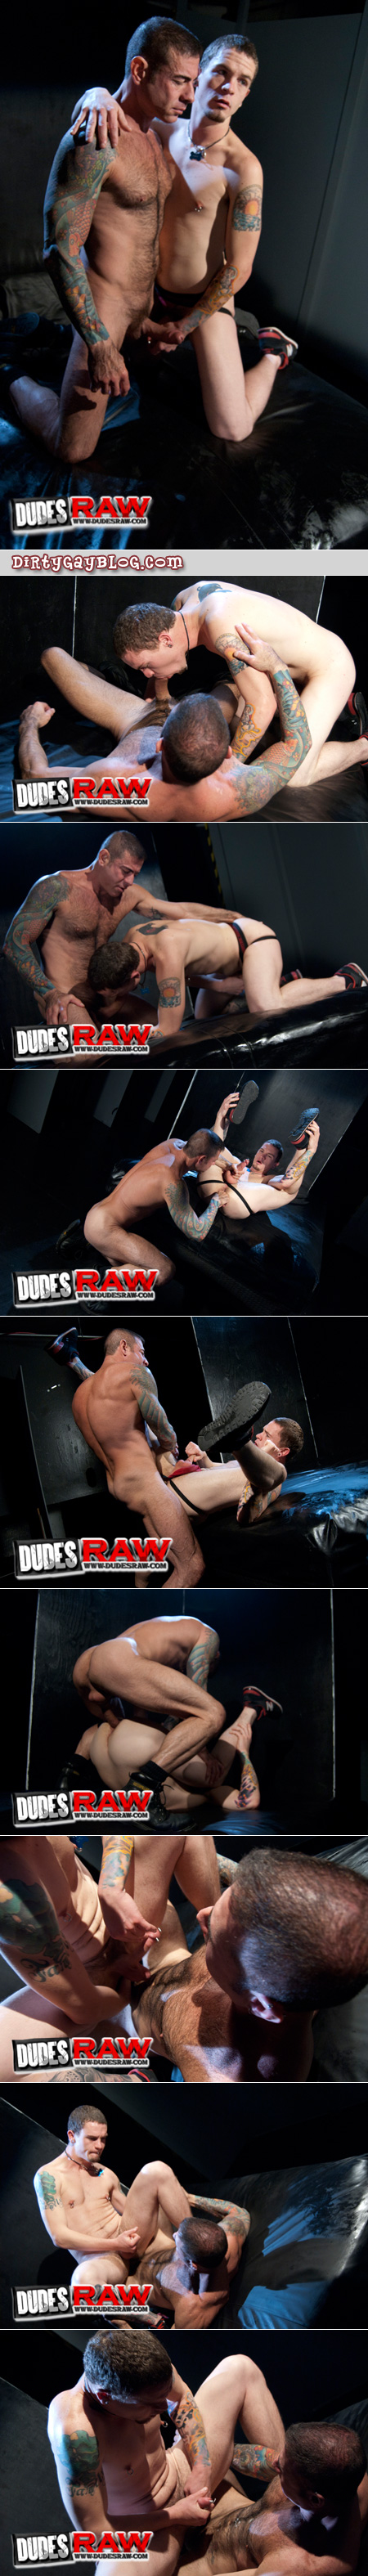 Tattooed Daddy fucks his inked up son at the gay gloryhole.